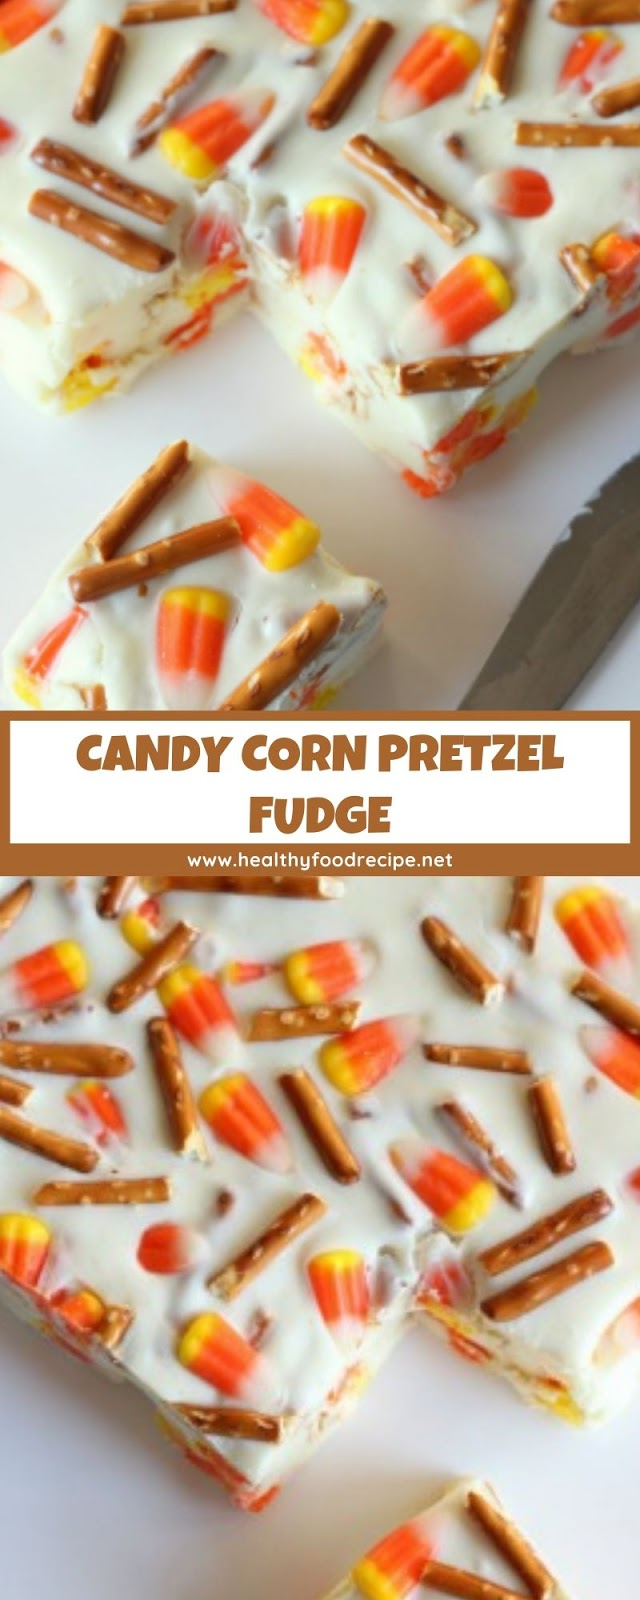 CANDY CORN PRETZEL FUDGE